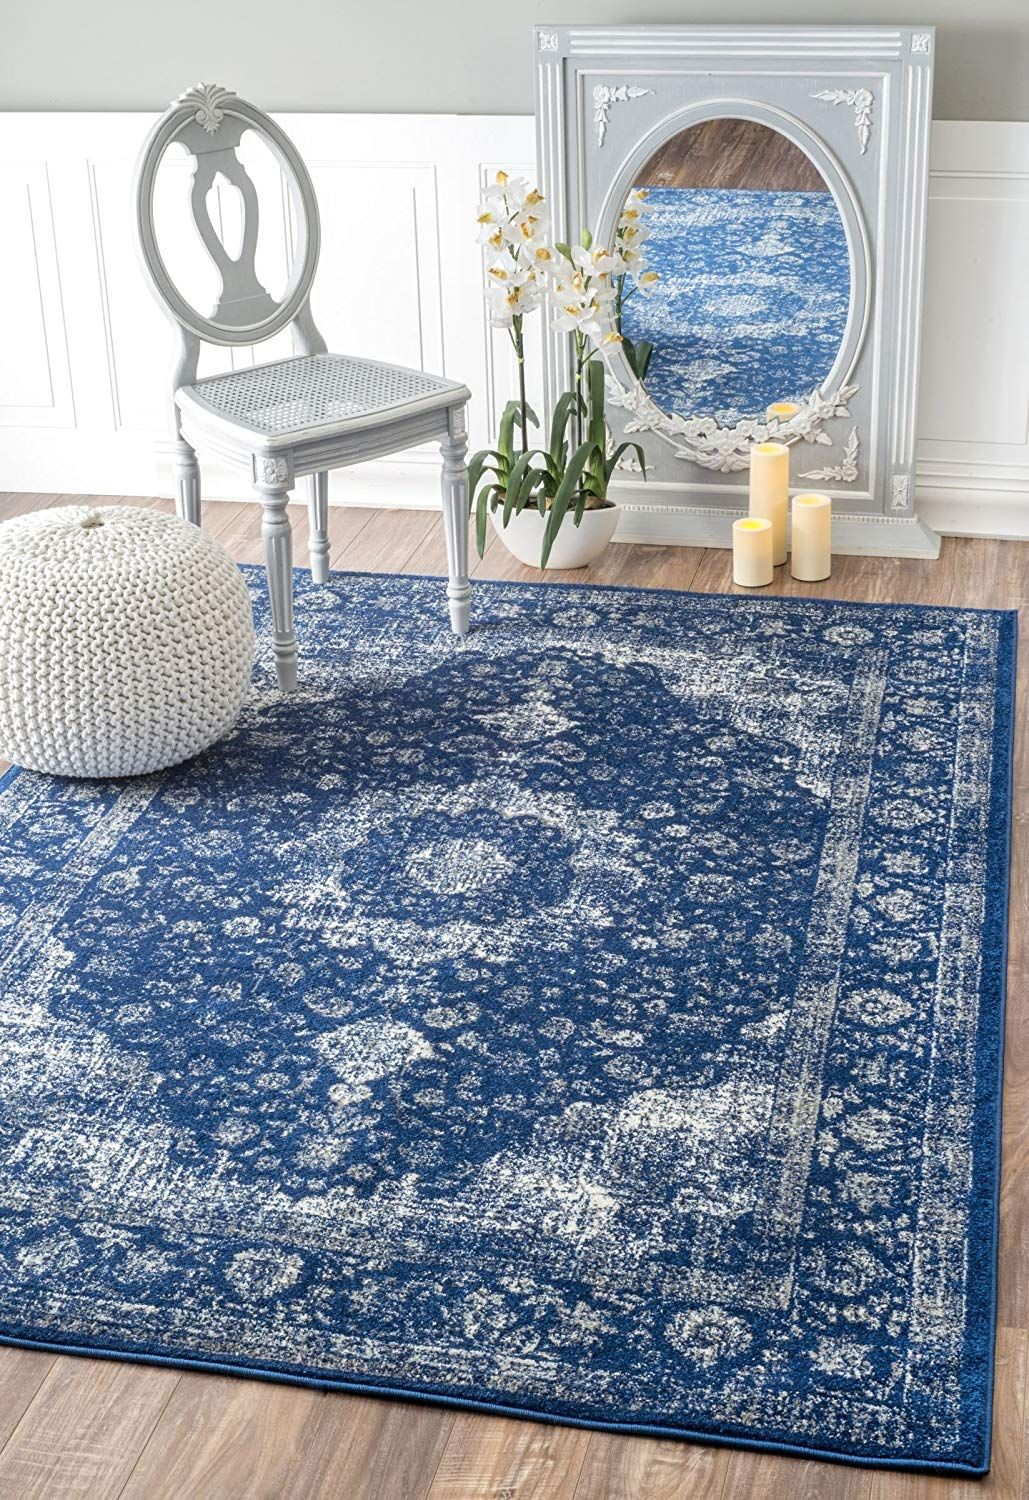 Amazon Com Traditional Persian Vintage Fancy Dark Blue Area Rugs 9 Feet By 12 Feet 9 X 12 Garden Outdoor Blue Area Rugs Dark Blue Rug Buy Area Rugs